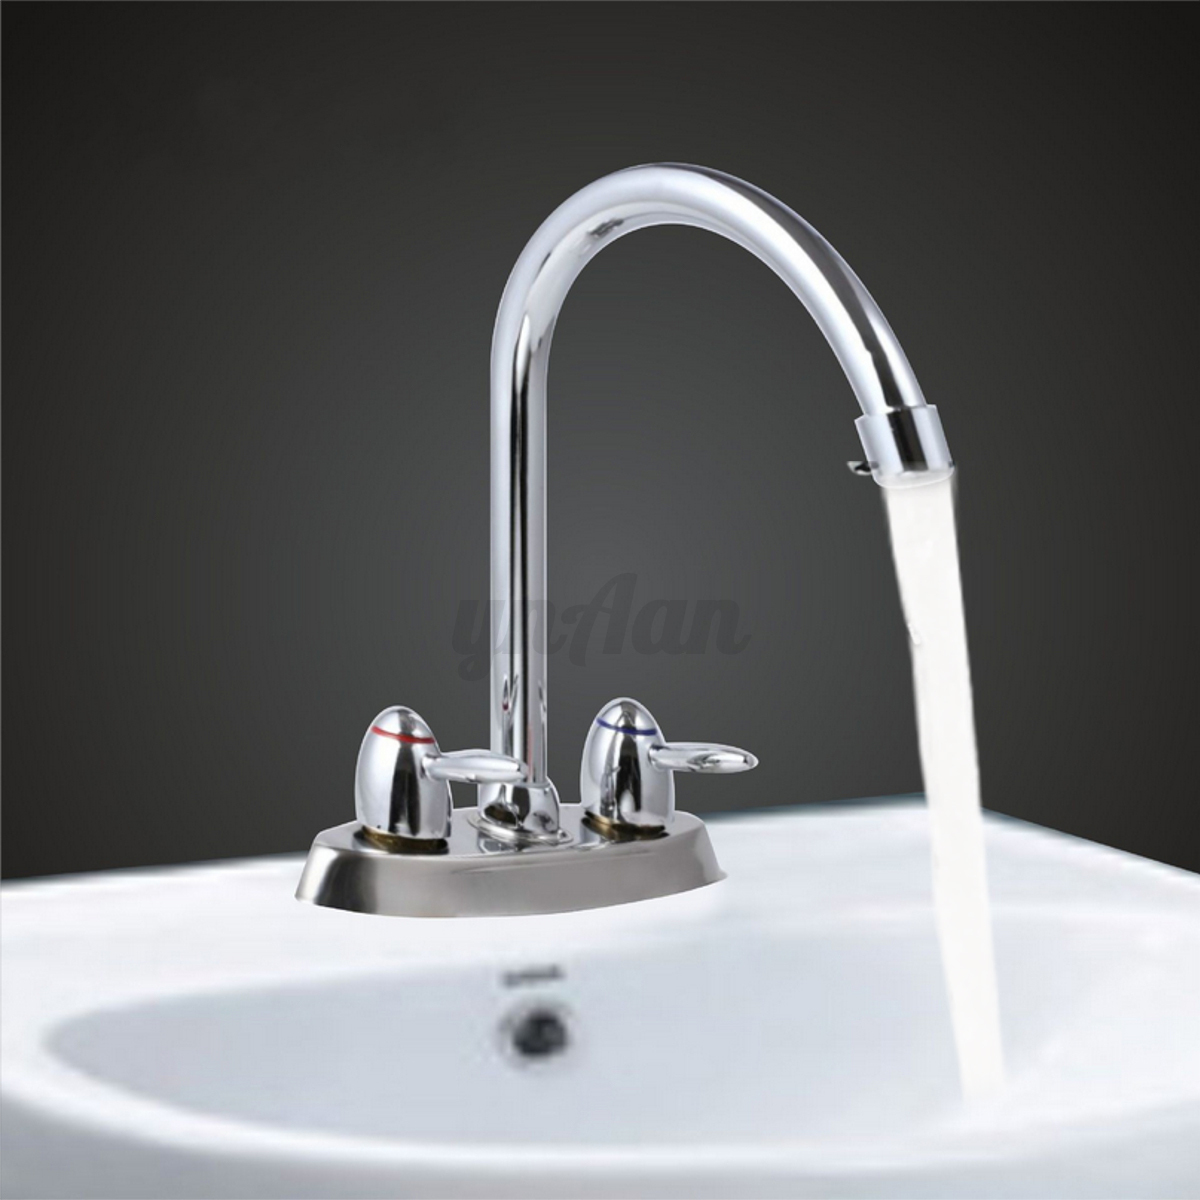 Kitchen Basin Sink Faucet Tap Mixer Spout Reverse Osmosis Drinking Water Filter Ebay